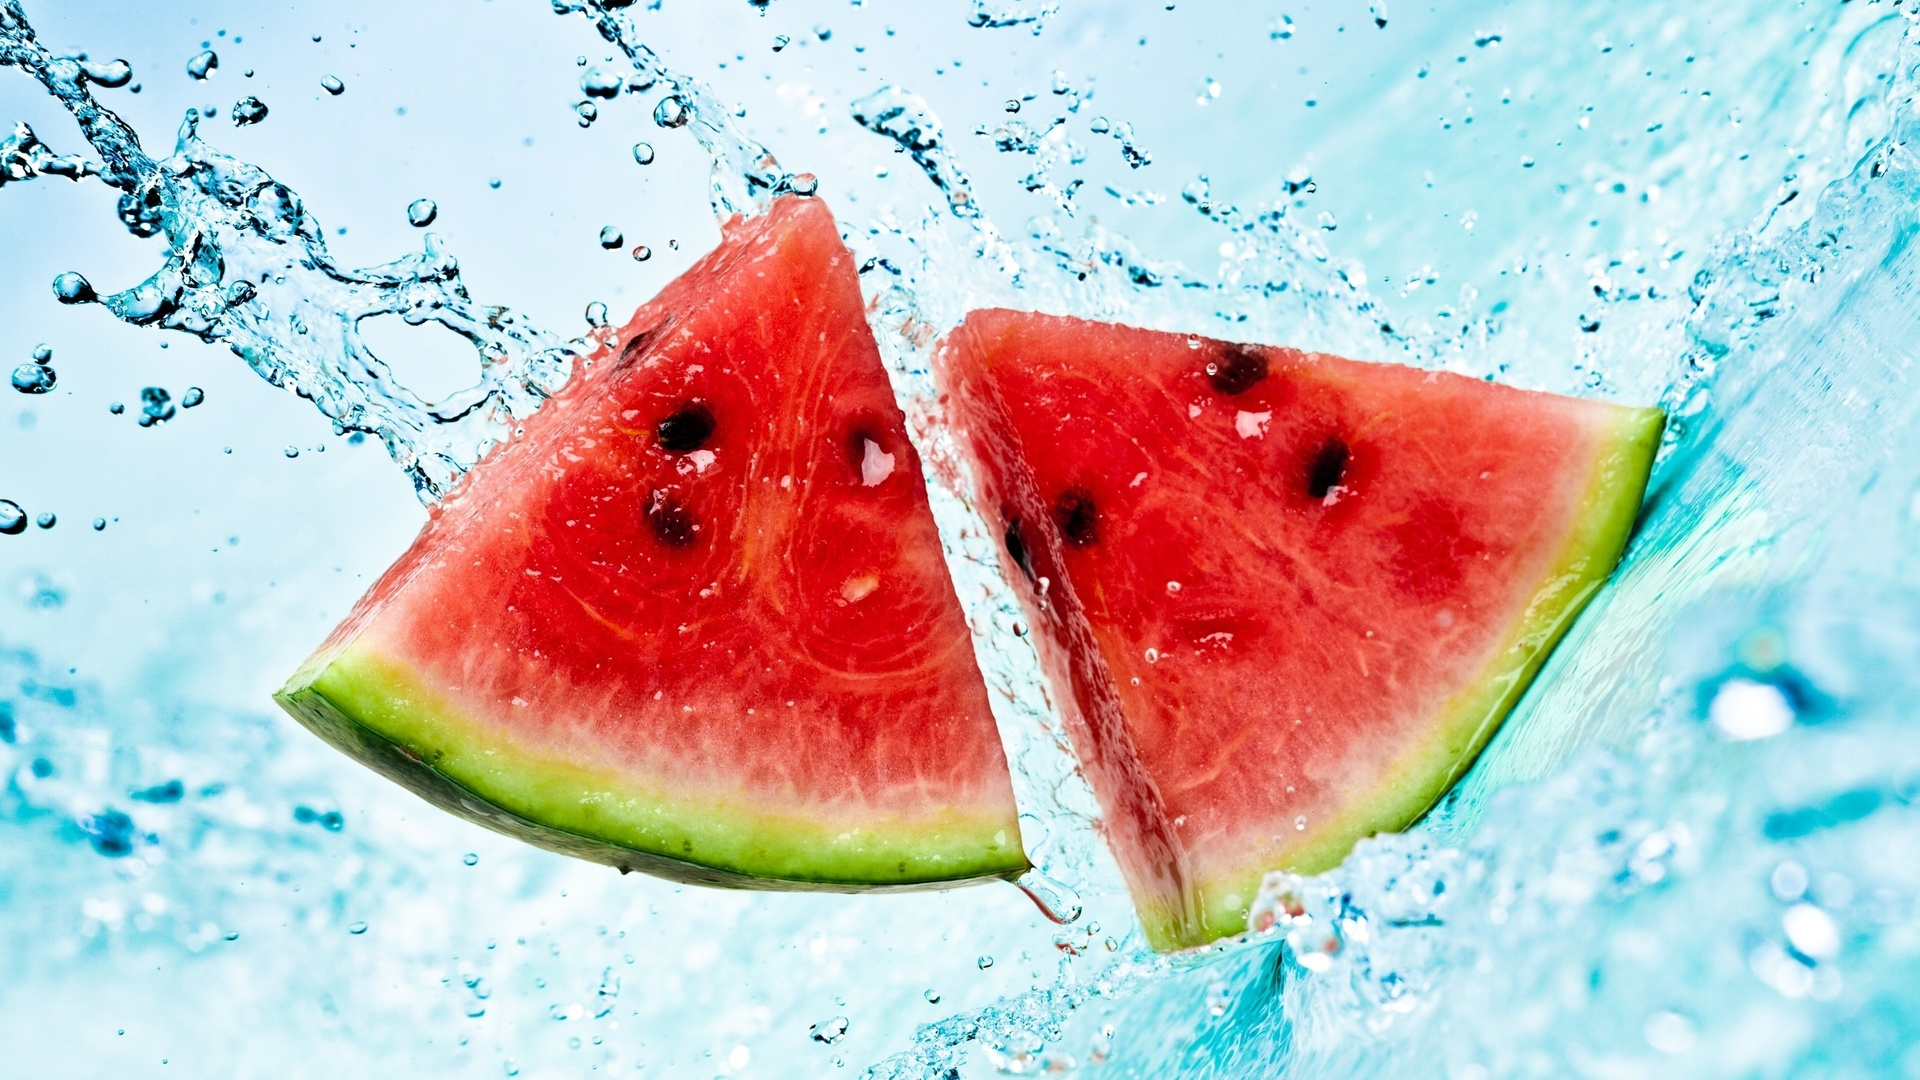 Watermelon High Quality Wallpapers